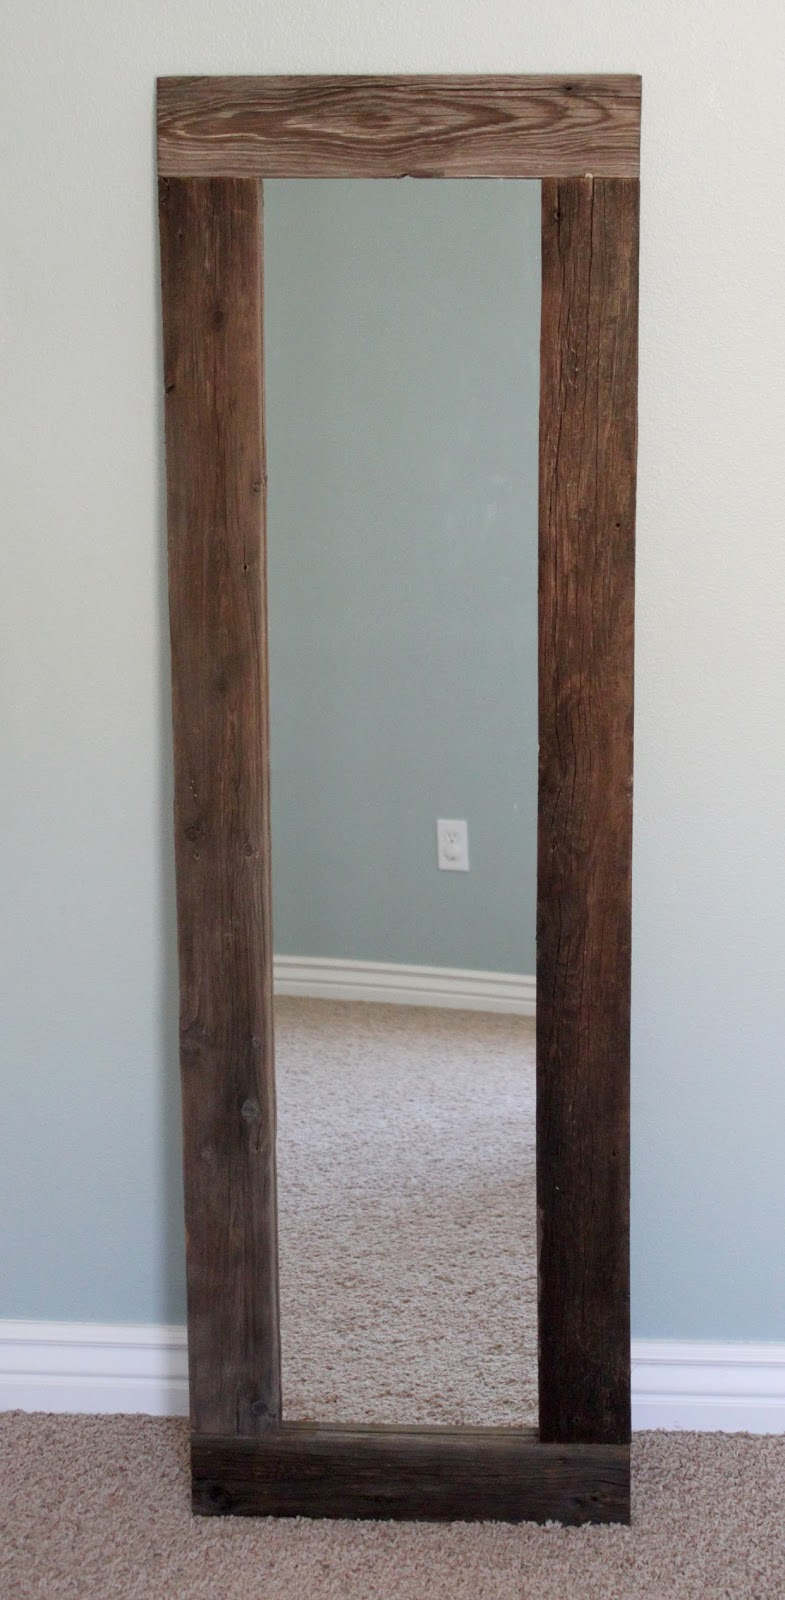 Diy wood mirror frame diywoodplans for Wood framed mirrors